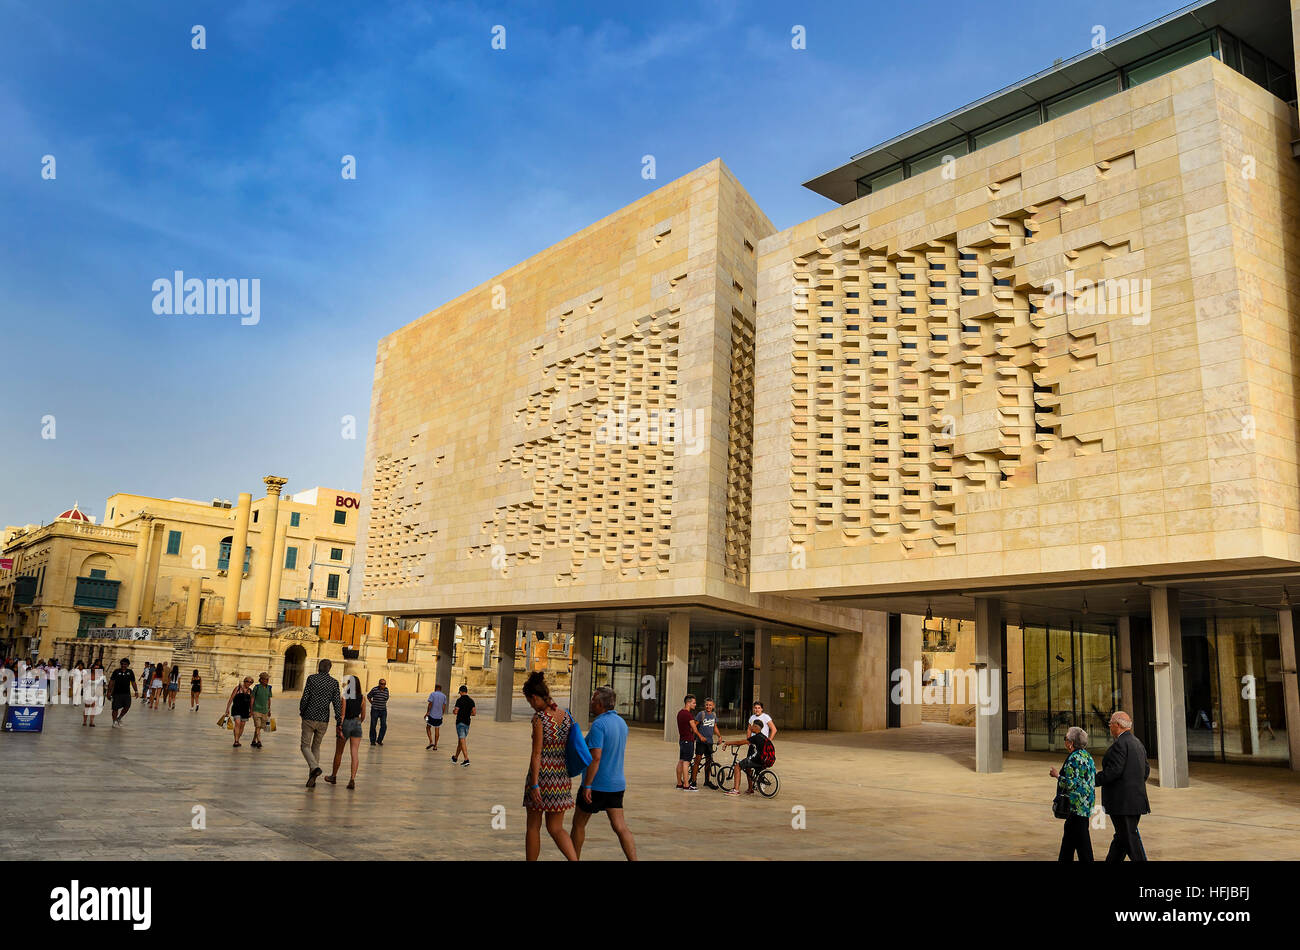 The new Parliament House of Malta. The building was constructed between 2011 and 2015 to designs by Renzo Piano - Stock Image